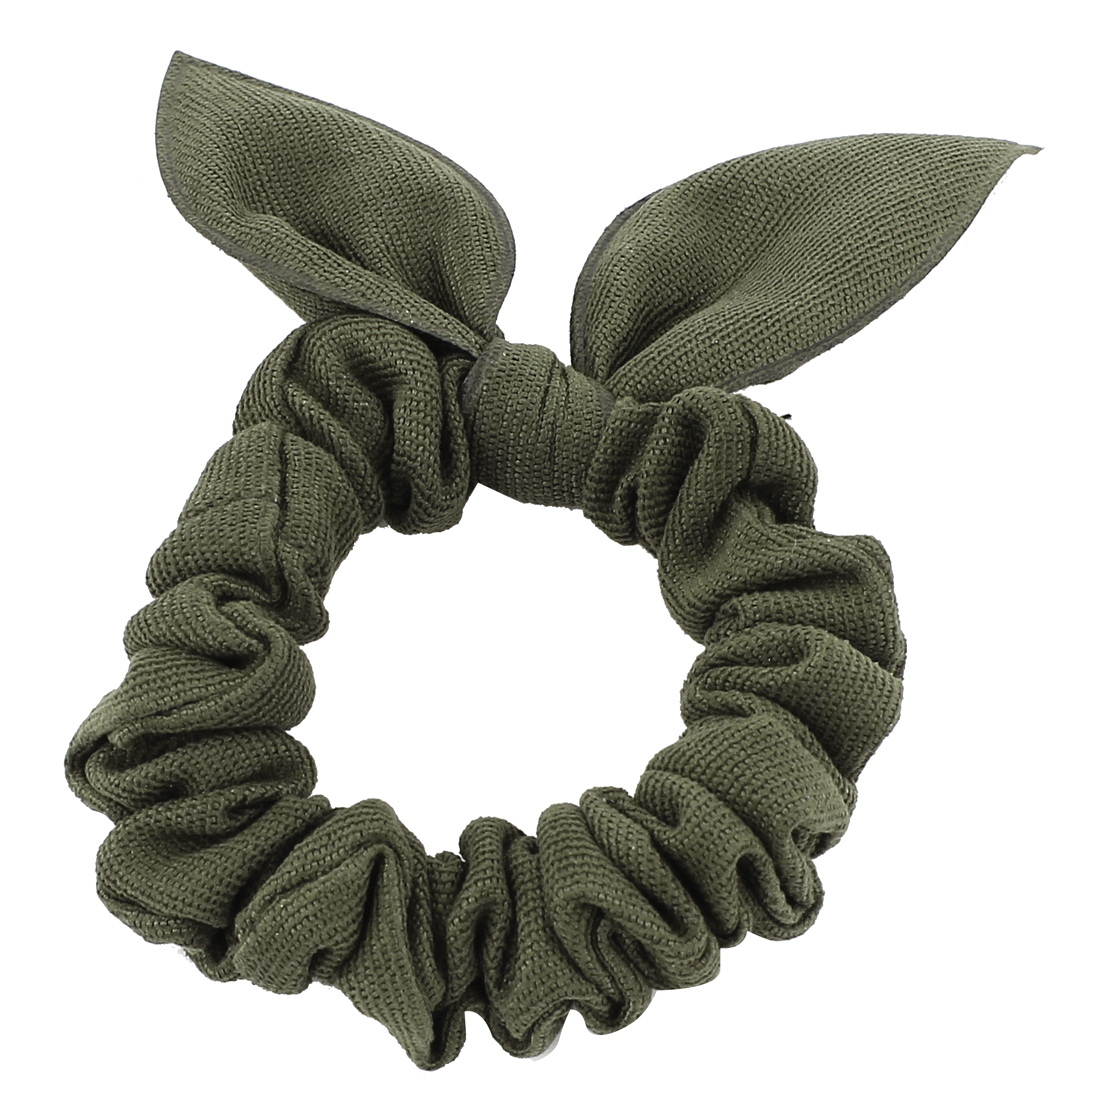 Girls Army Green Rabbit Ear Head Shaped Elastic Hair Tie Hairband Scrunchie Ponytail Holder